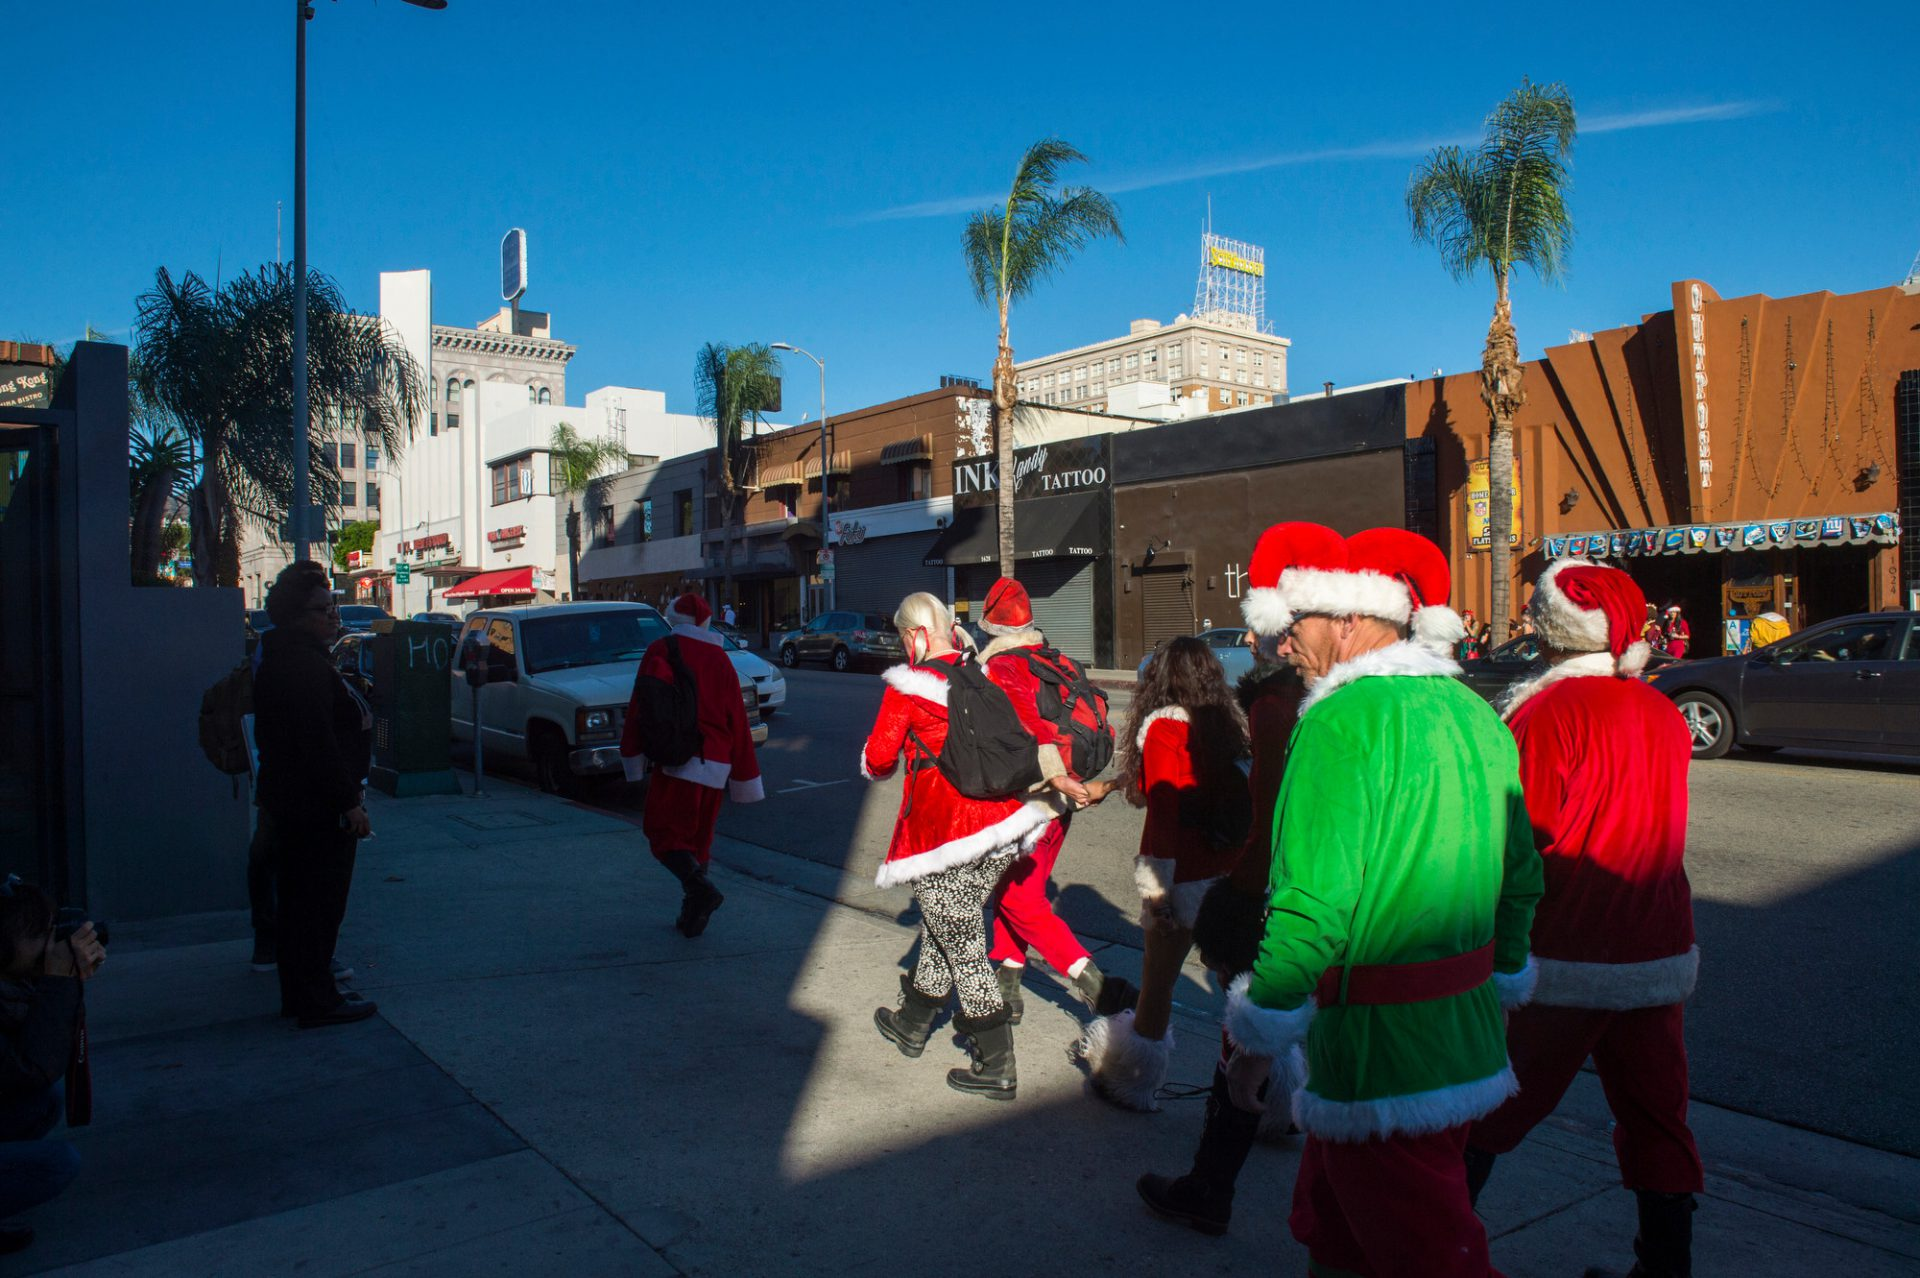 Photo: Men and women wearing Santa Claus and Mrs. Claus costumes walk on the sidewalk in Hollywood.